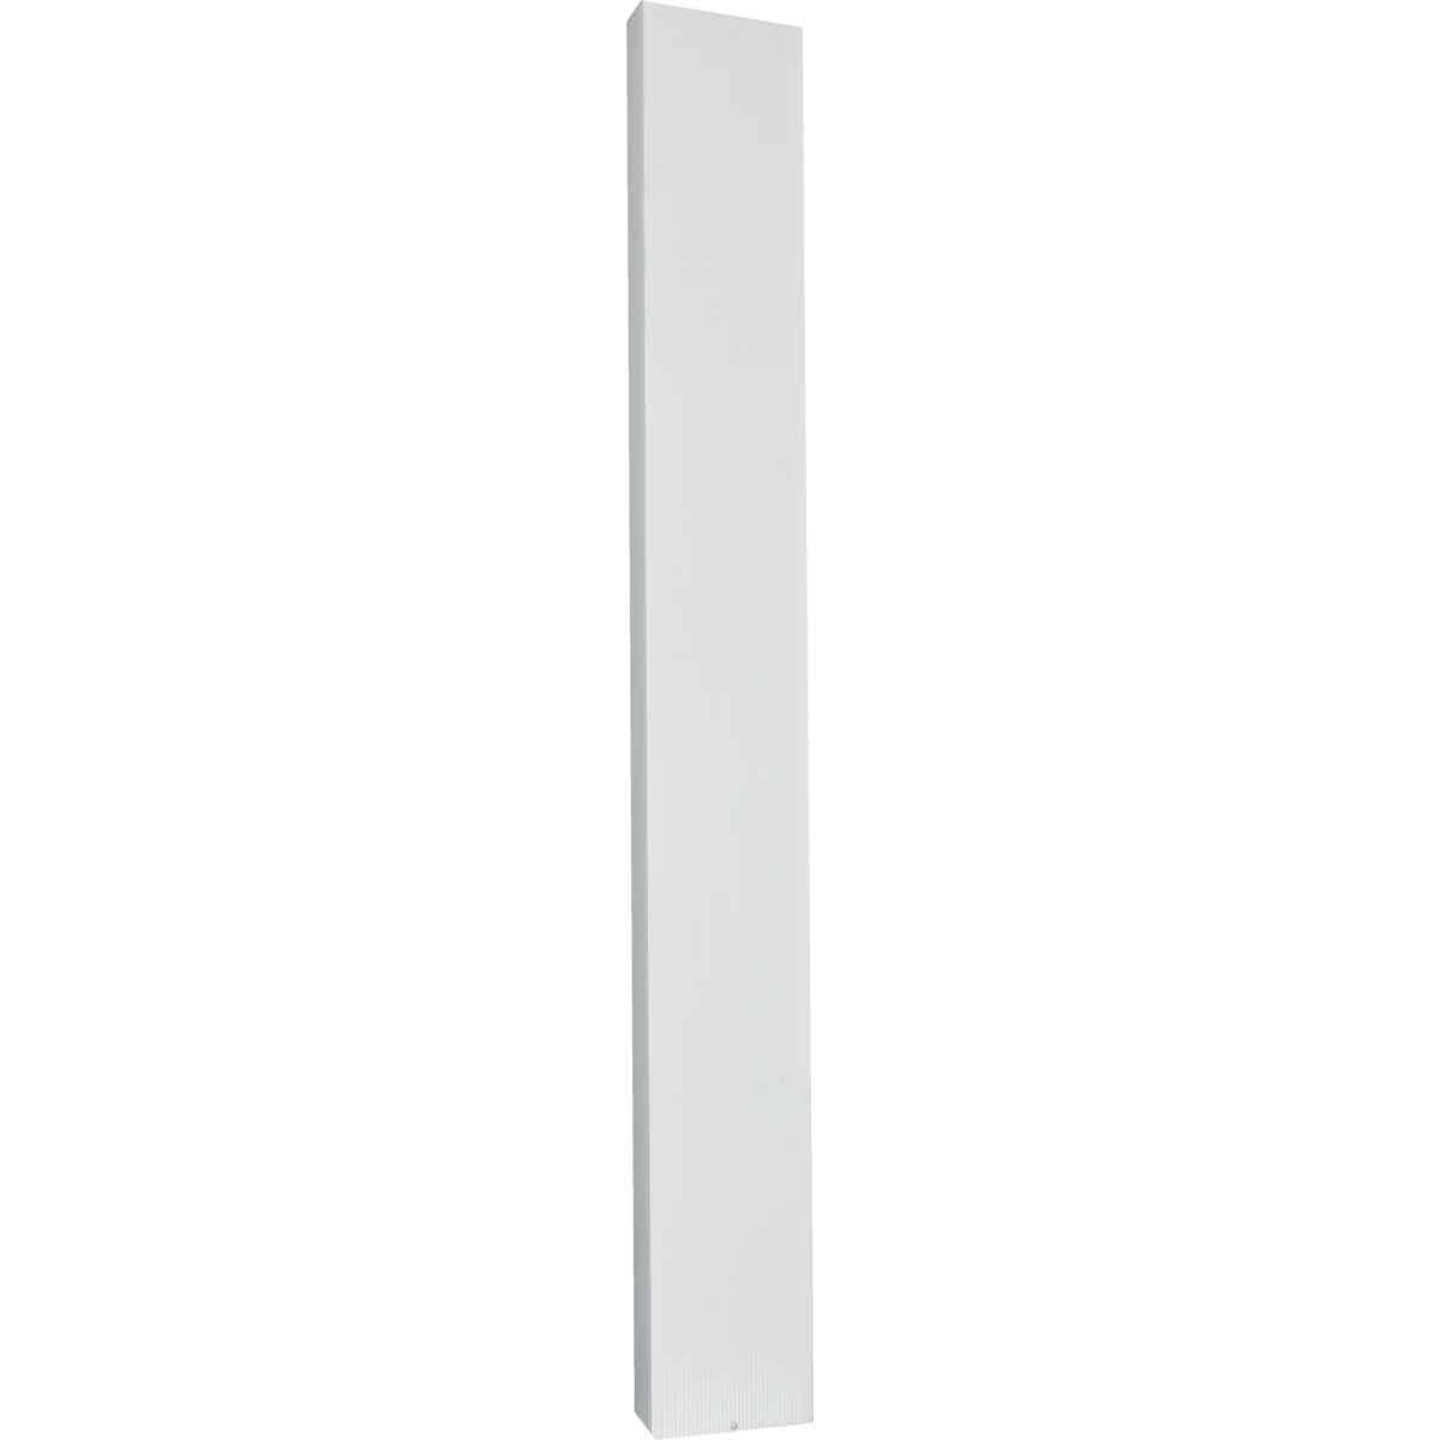 "M-D Ultra White 36"" x 4-1/2"" Sill Nosing Image 2"